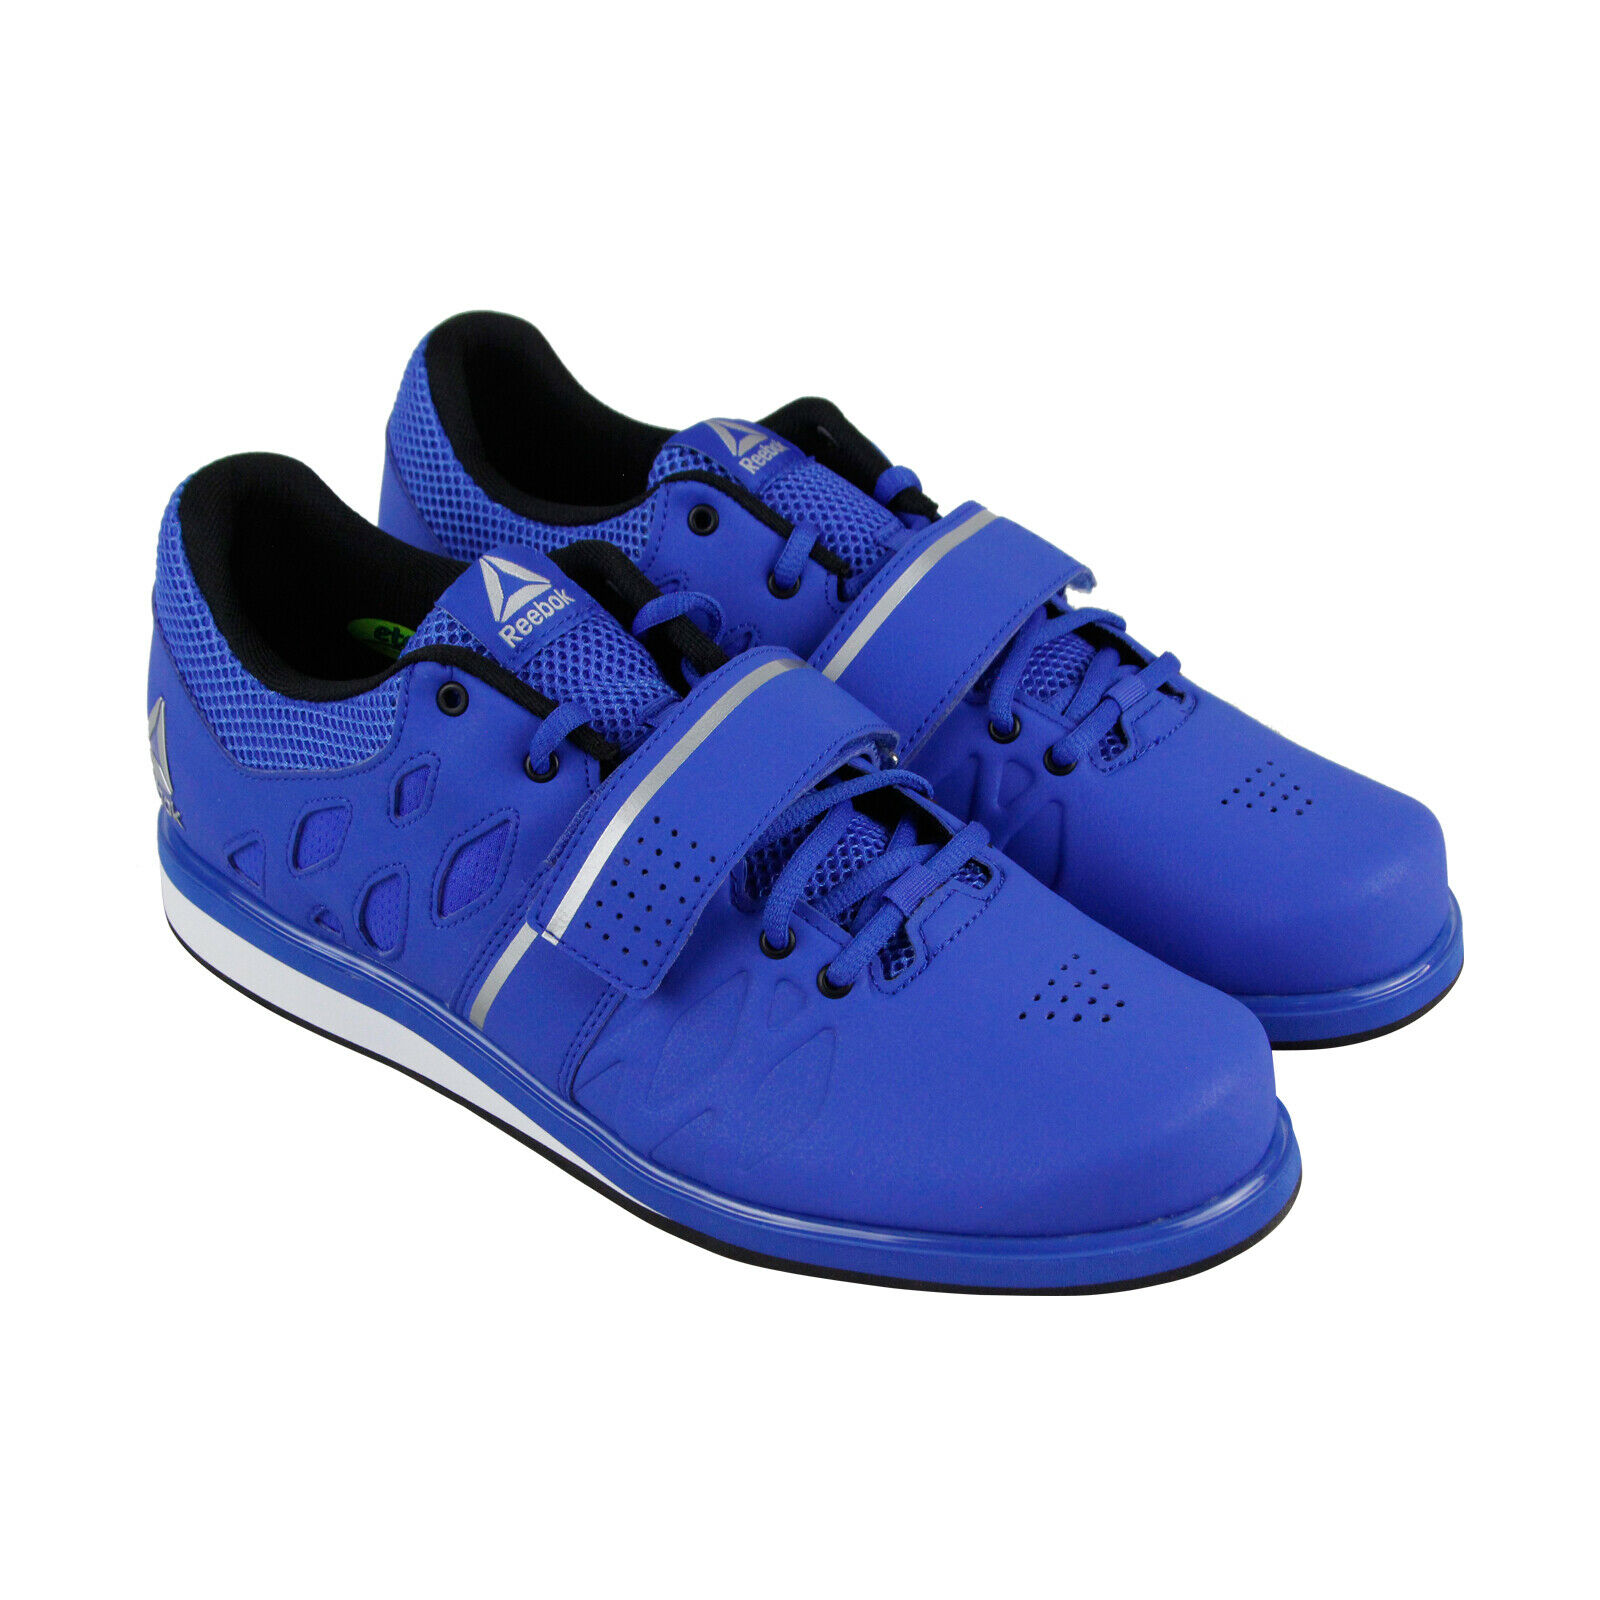 Reebok Lifter Pr DV4588 Mens  bluee Athletic Gym Low Top Weightlifting shoes  get the latest